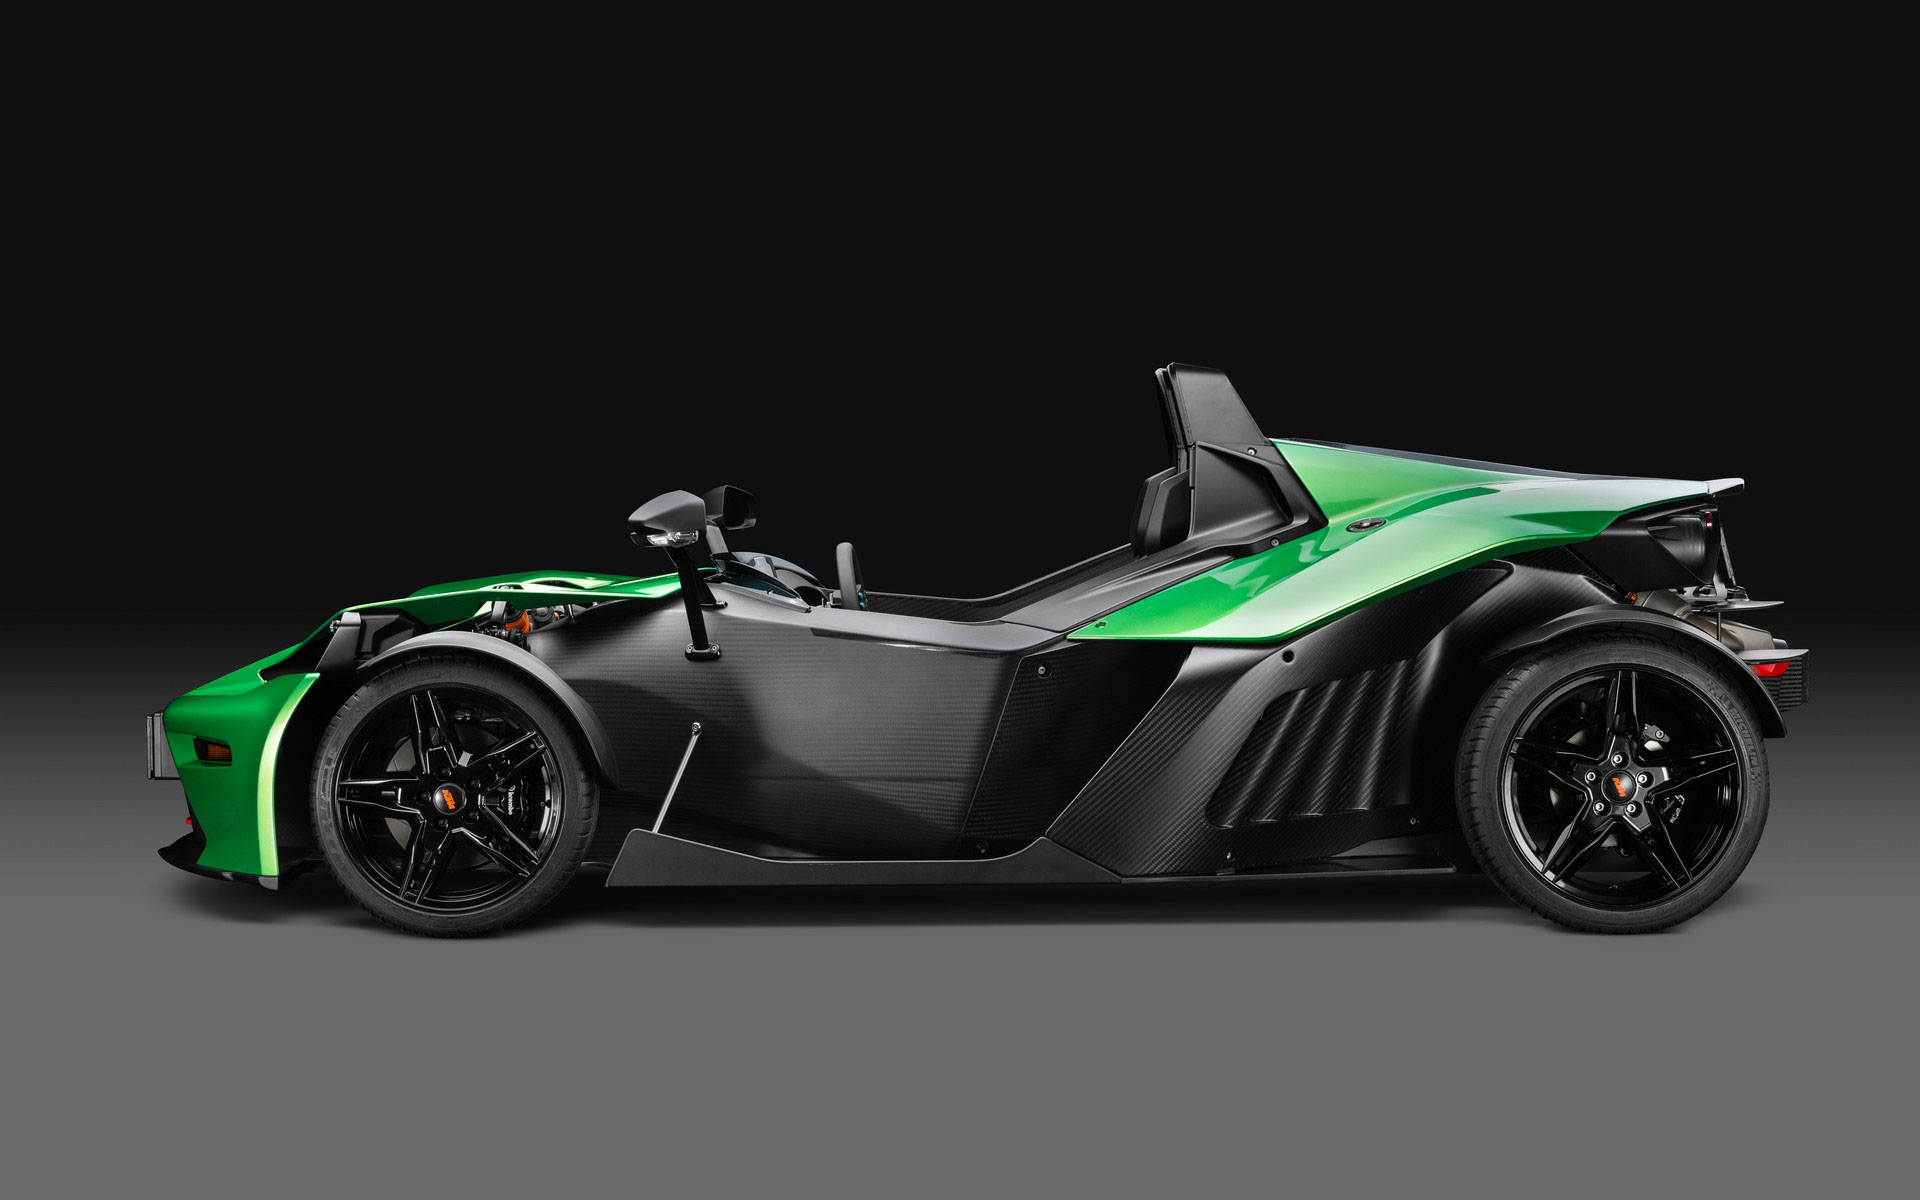 Ktm X Bow 2018 >> 2017 KTM X-Bow R Review